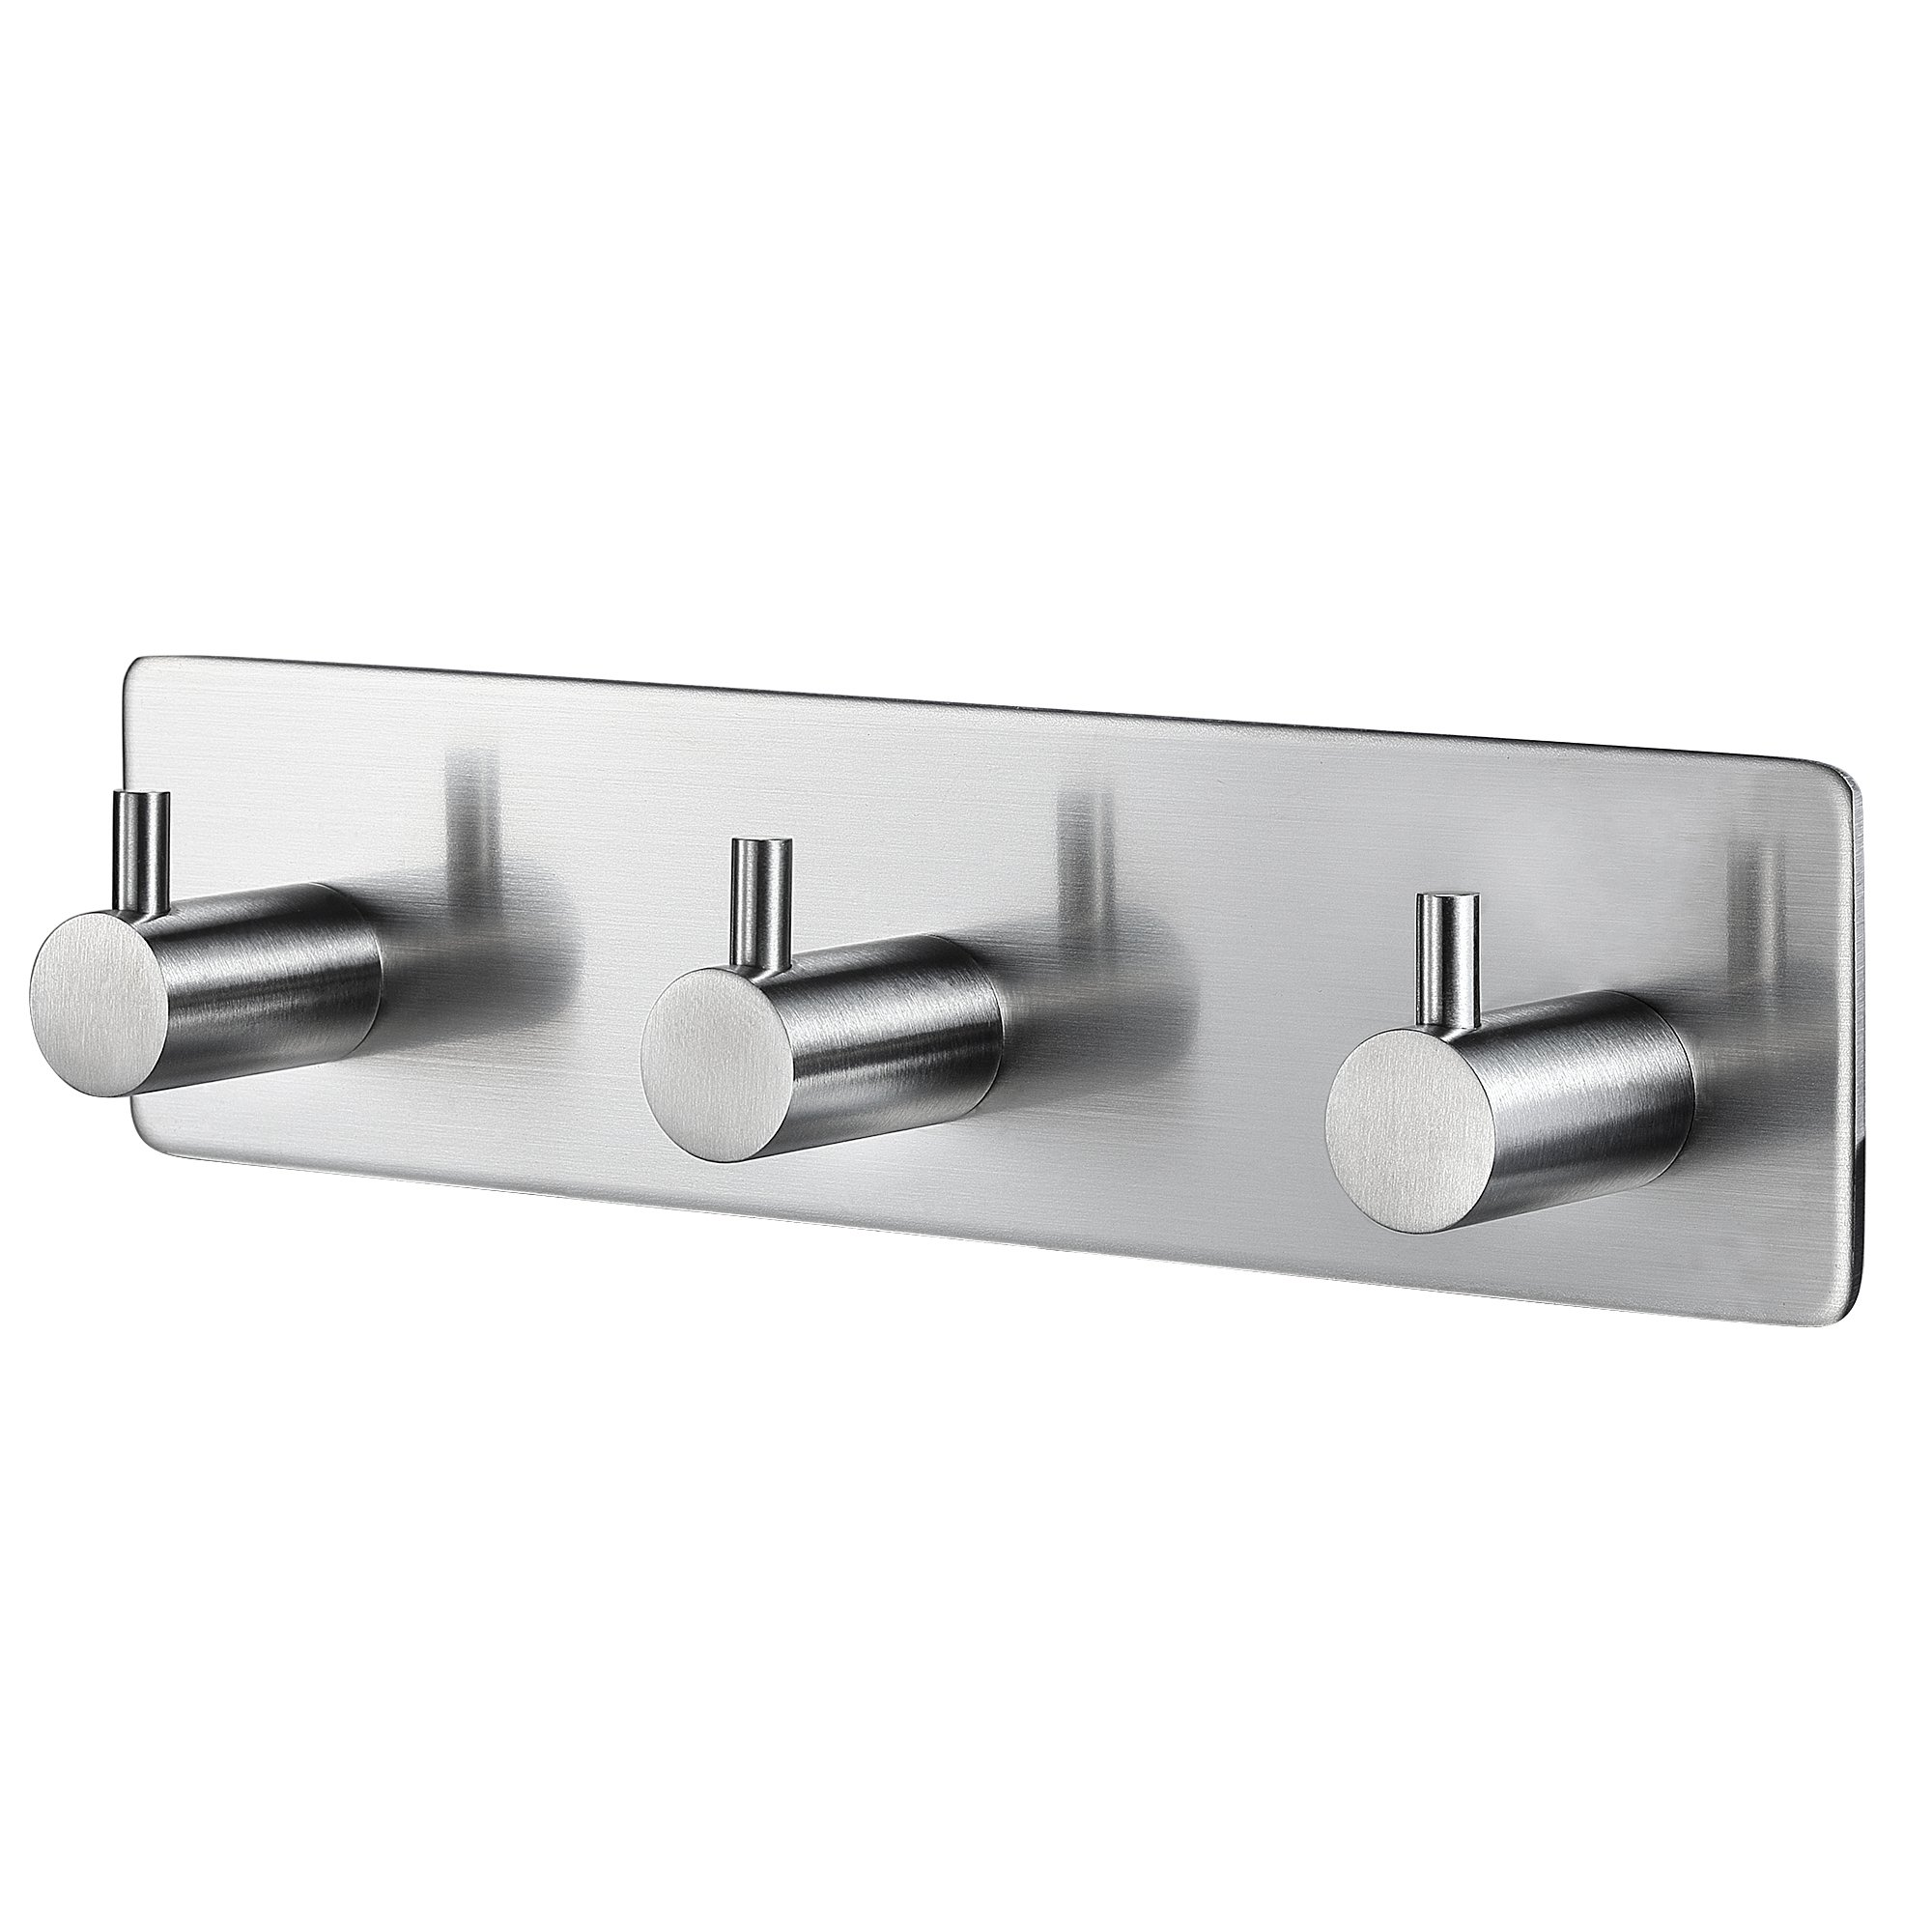 BasicForm Adhesive Hooks Stainless Steel Heavy Duty Ultra Strong Damage Free - 3 hooks in 1